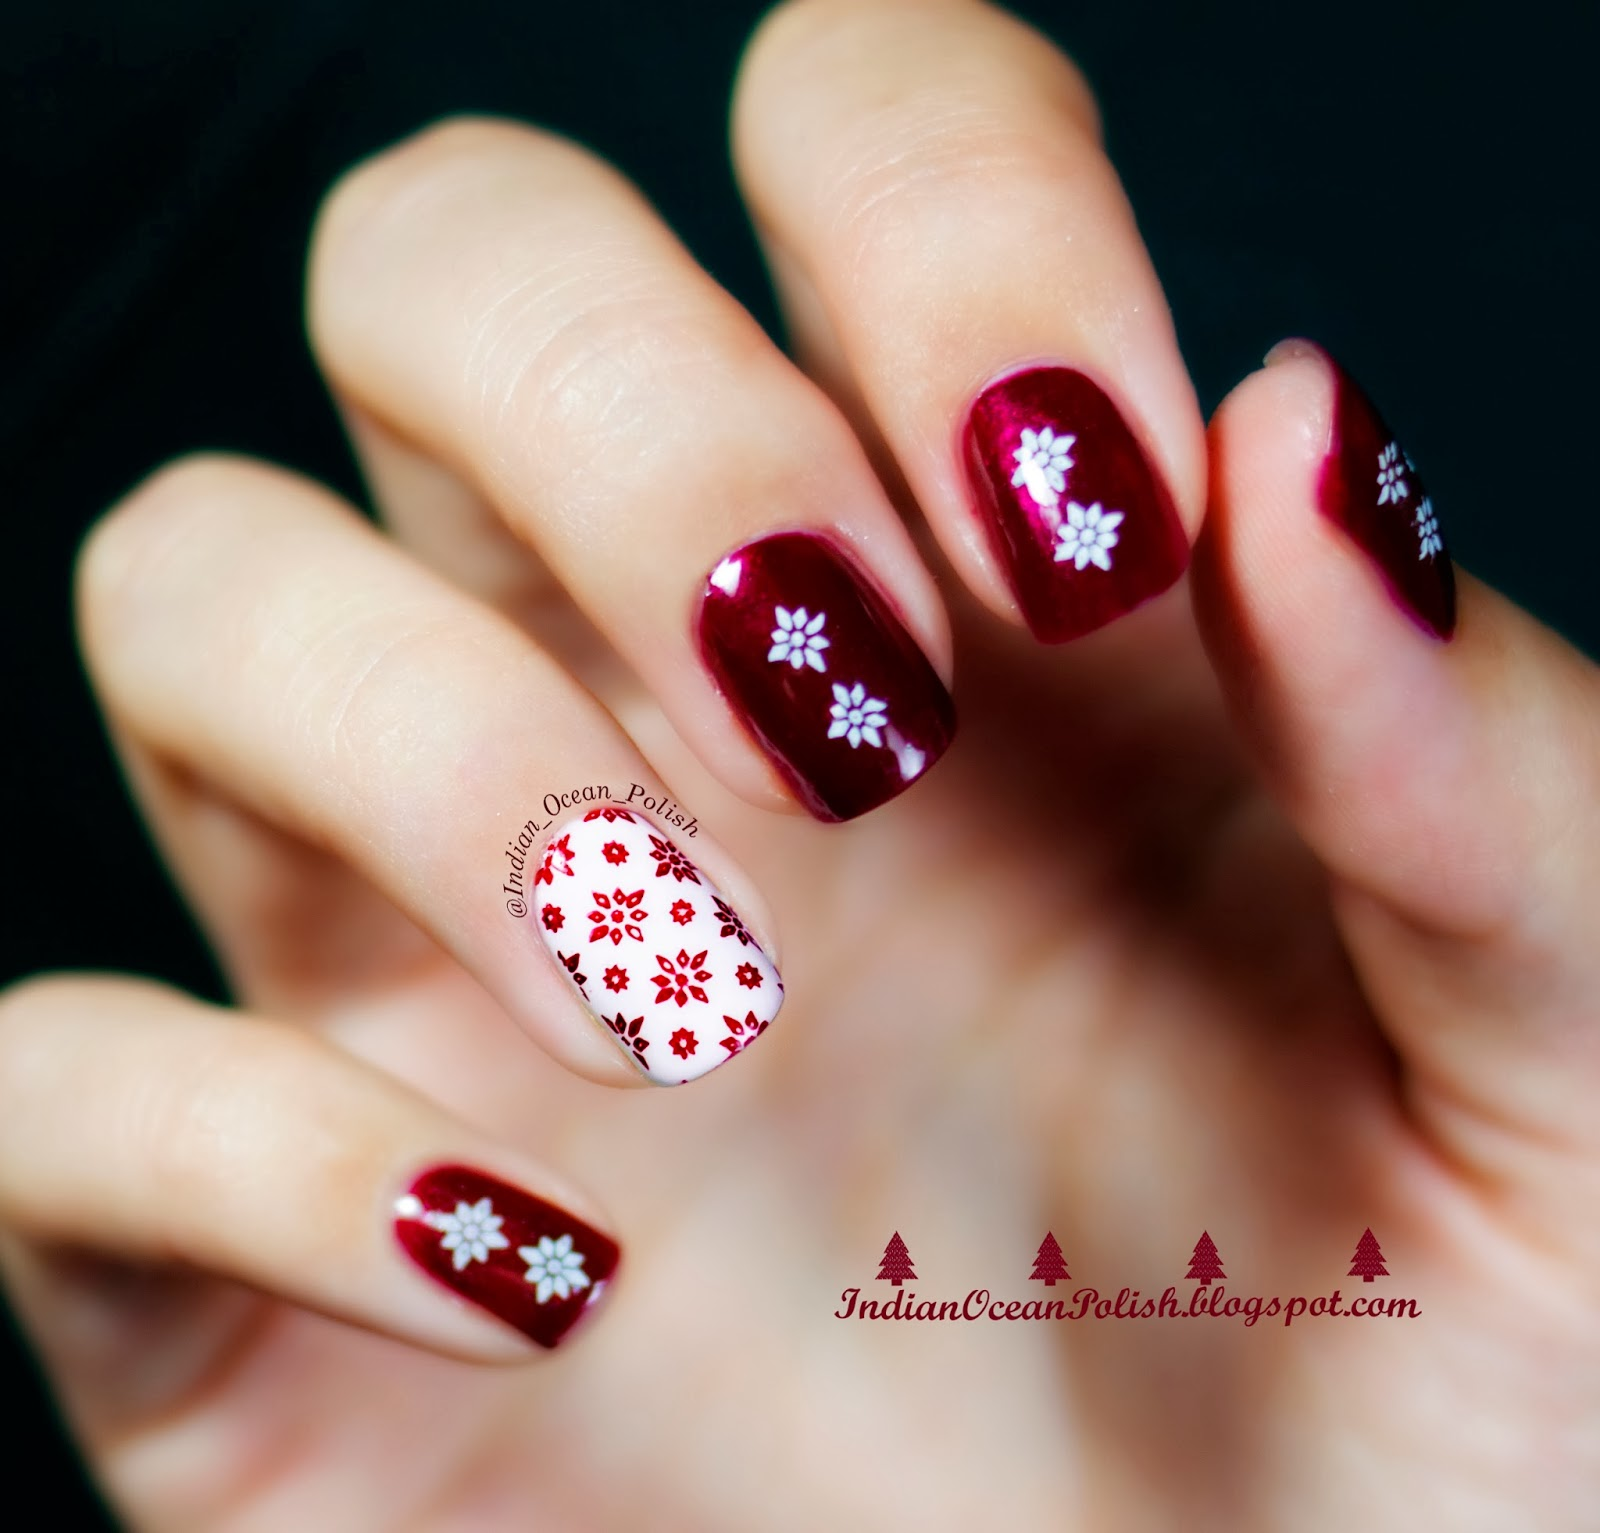 Easy Christmas Nail Art: Indian Ocean Polish: Christmas 2013 Nail Art Ideas: Simple